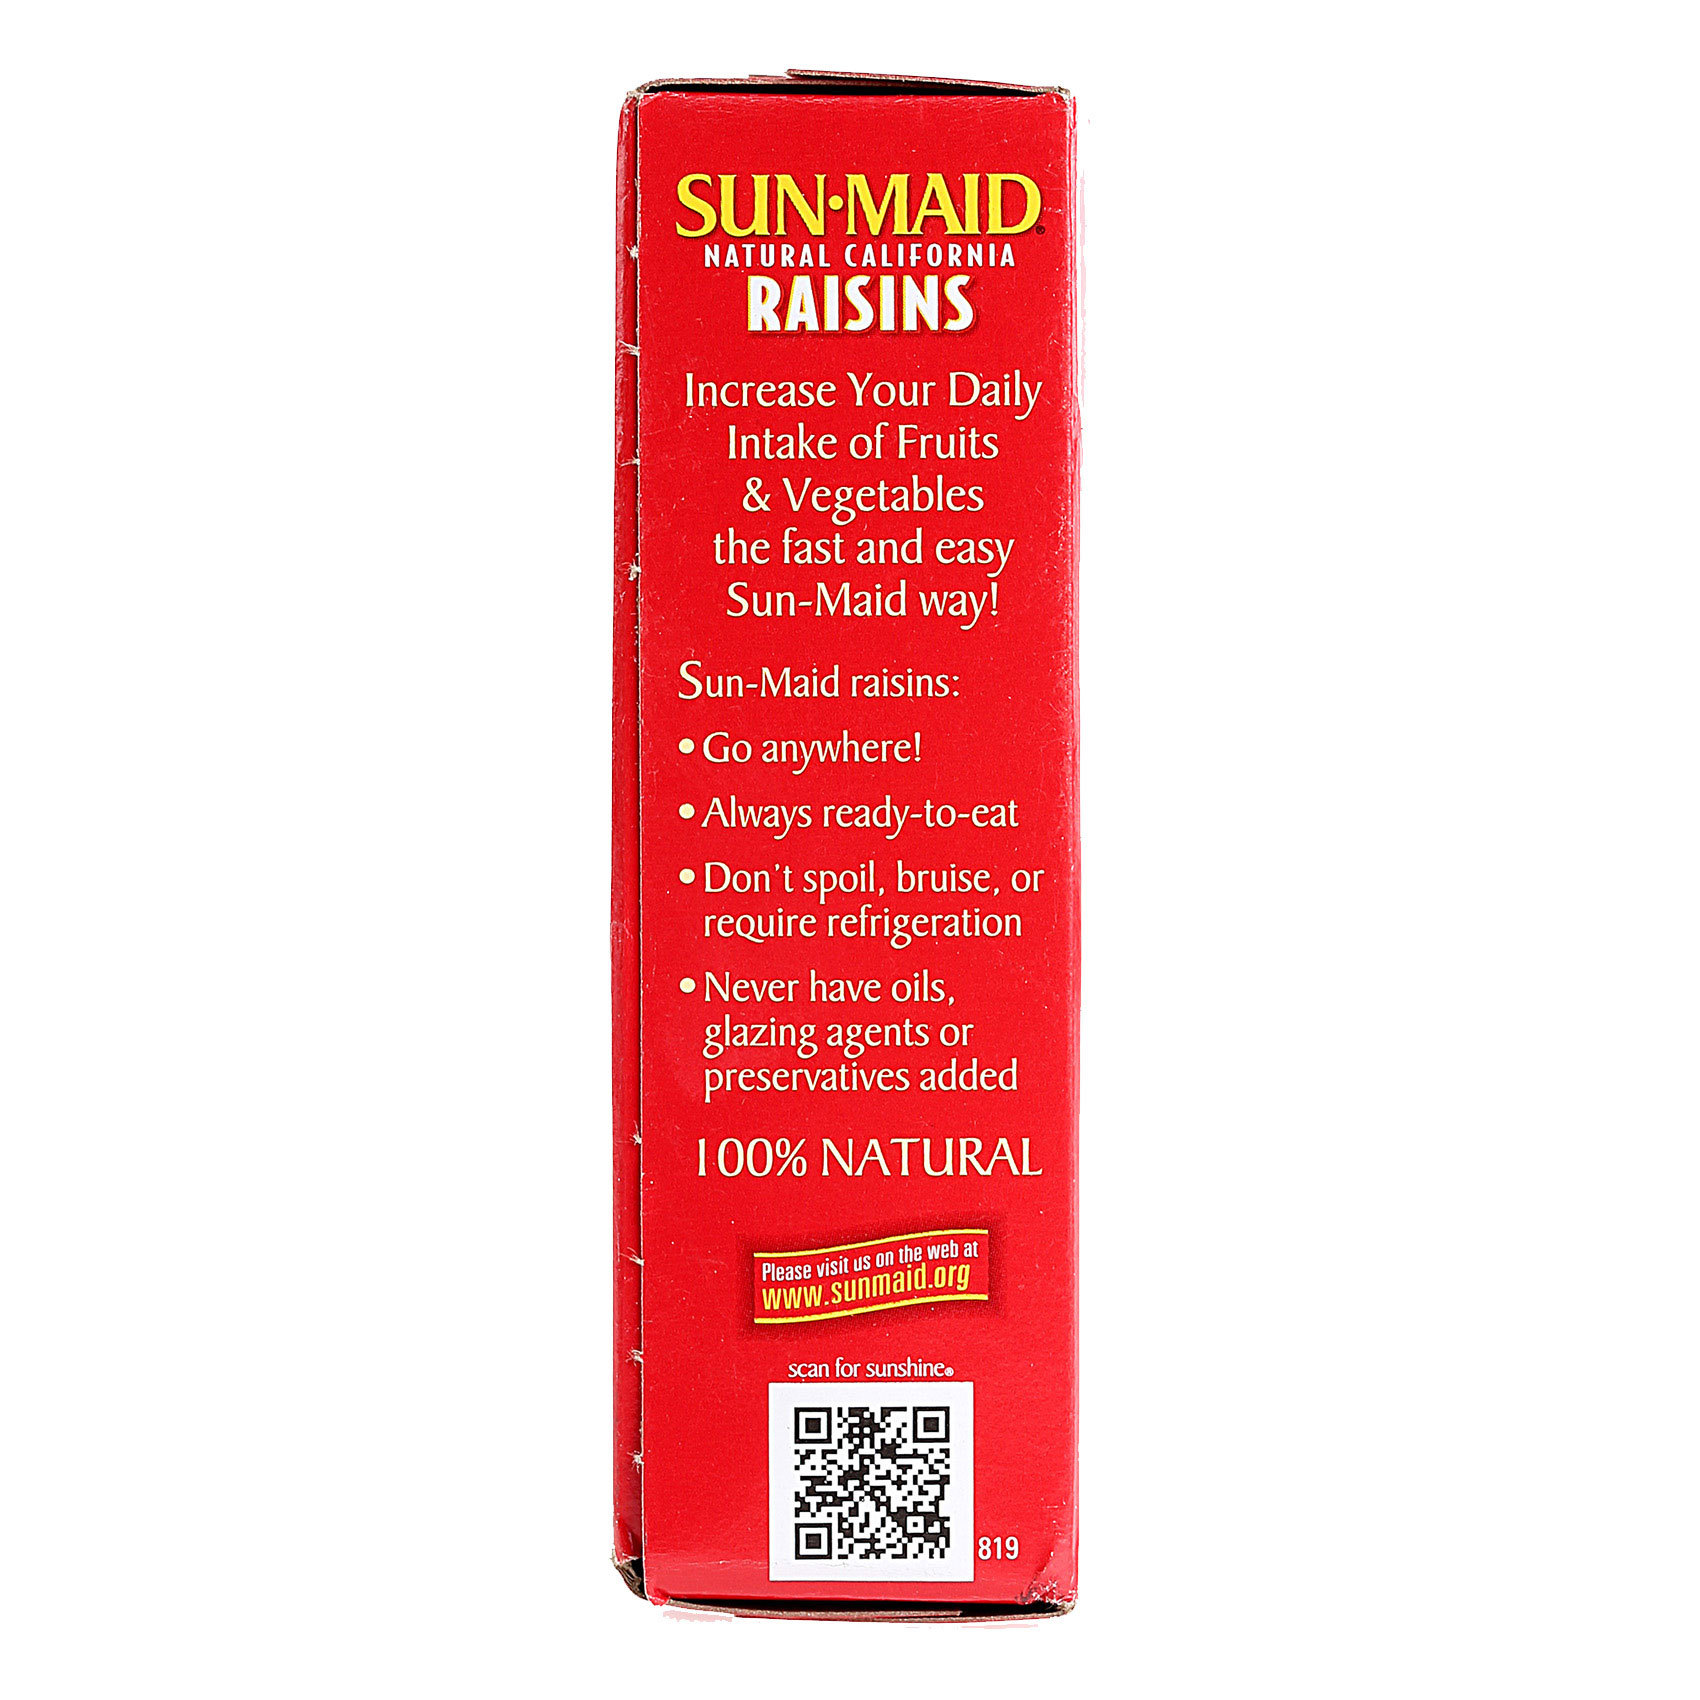 SUNMAID RAISINS CALIFORNIA 250G